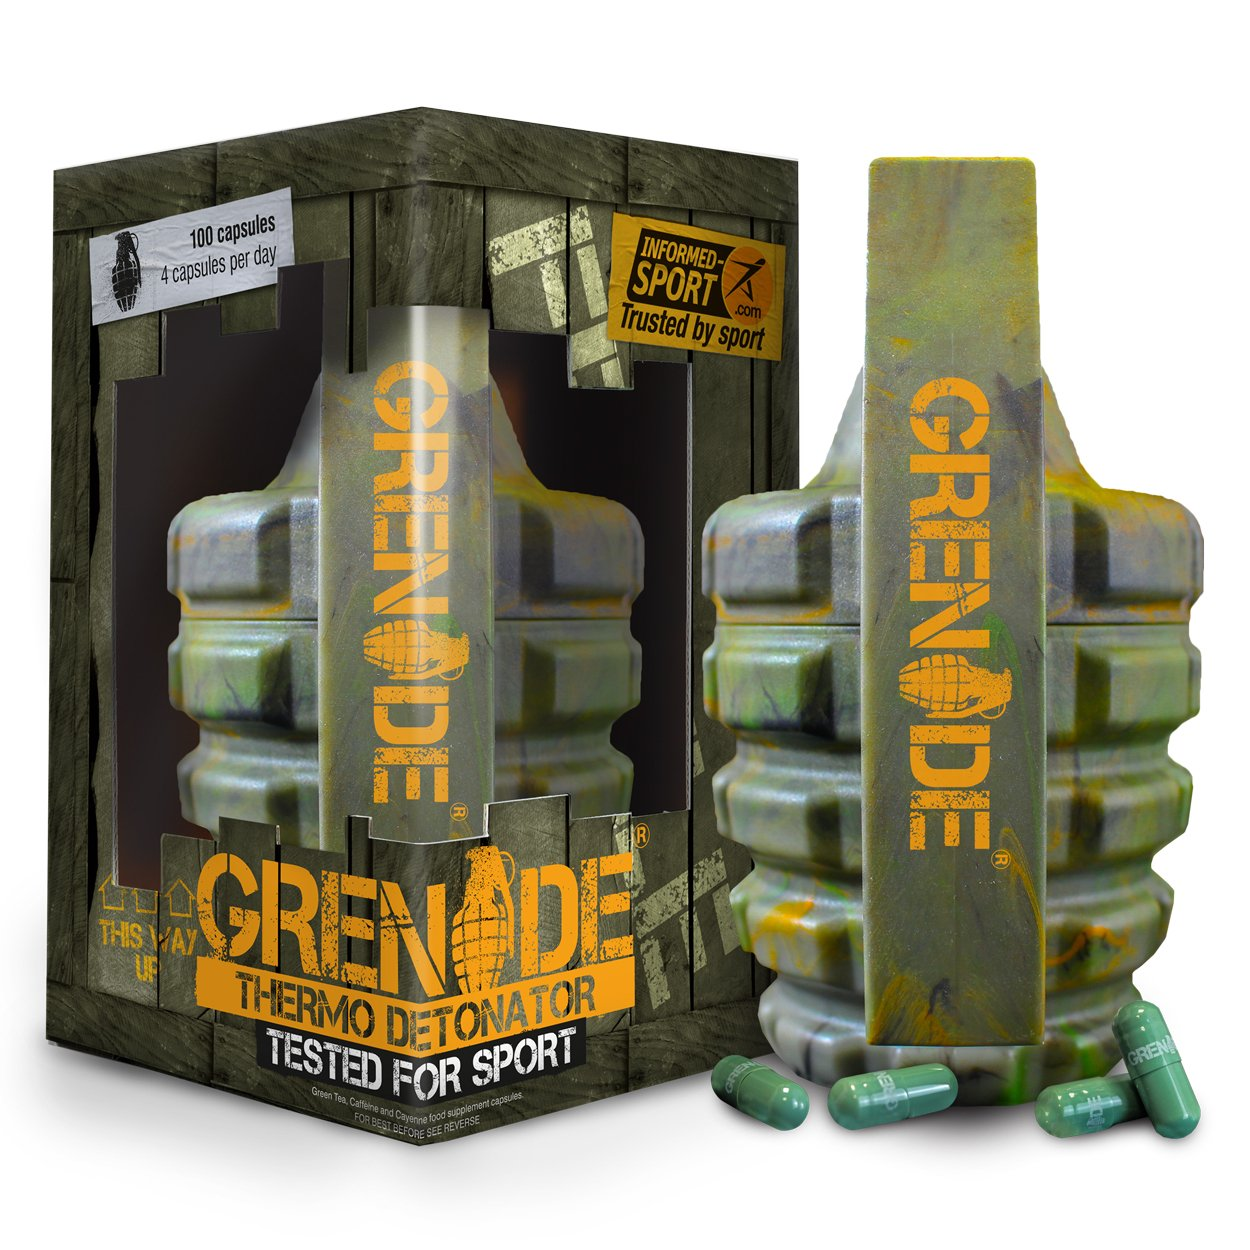 Grenade Fat Burner 100 caps (Informed Sports version) by Grenade (Image #2)